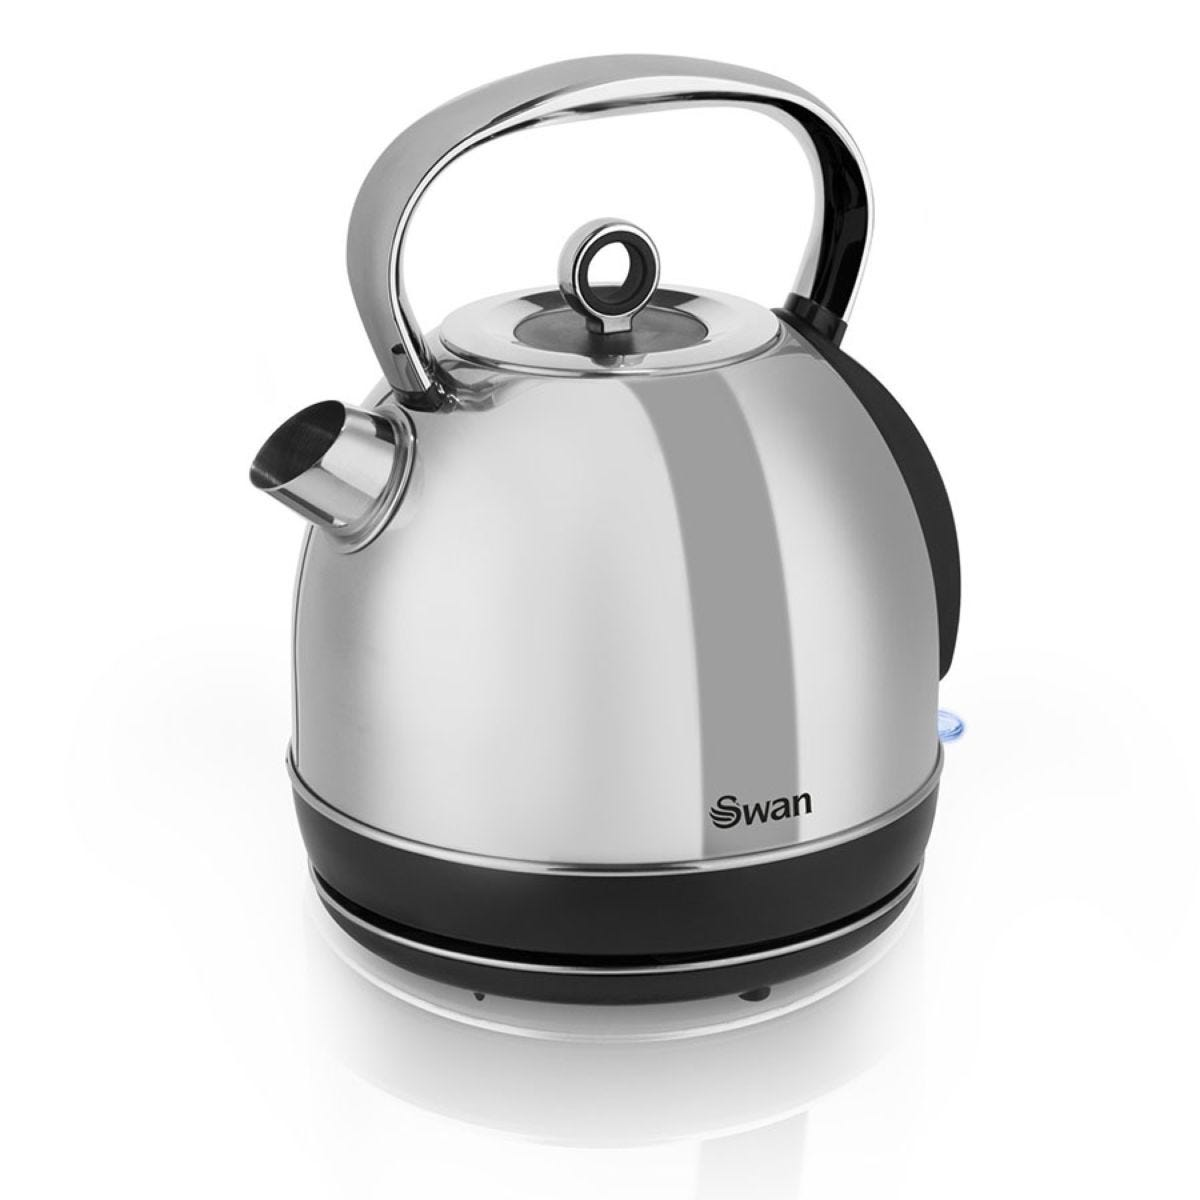 Swan SK14070N 1.7L Stainless Steel Dome Kettle